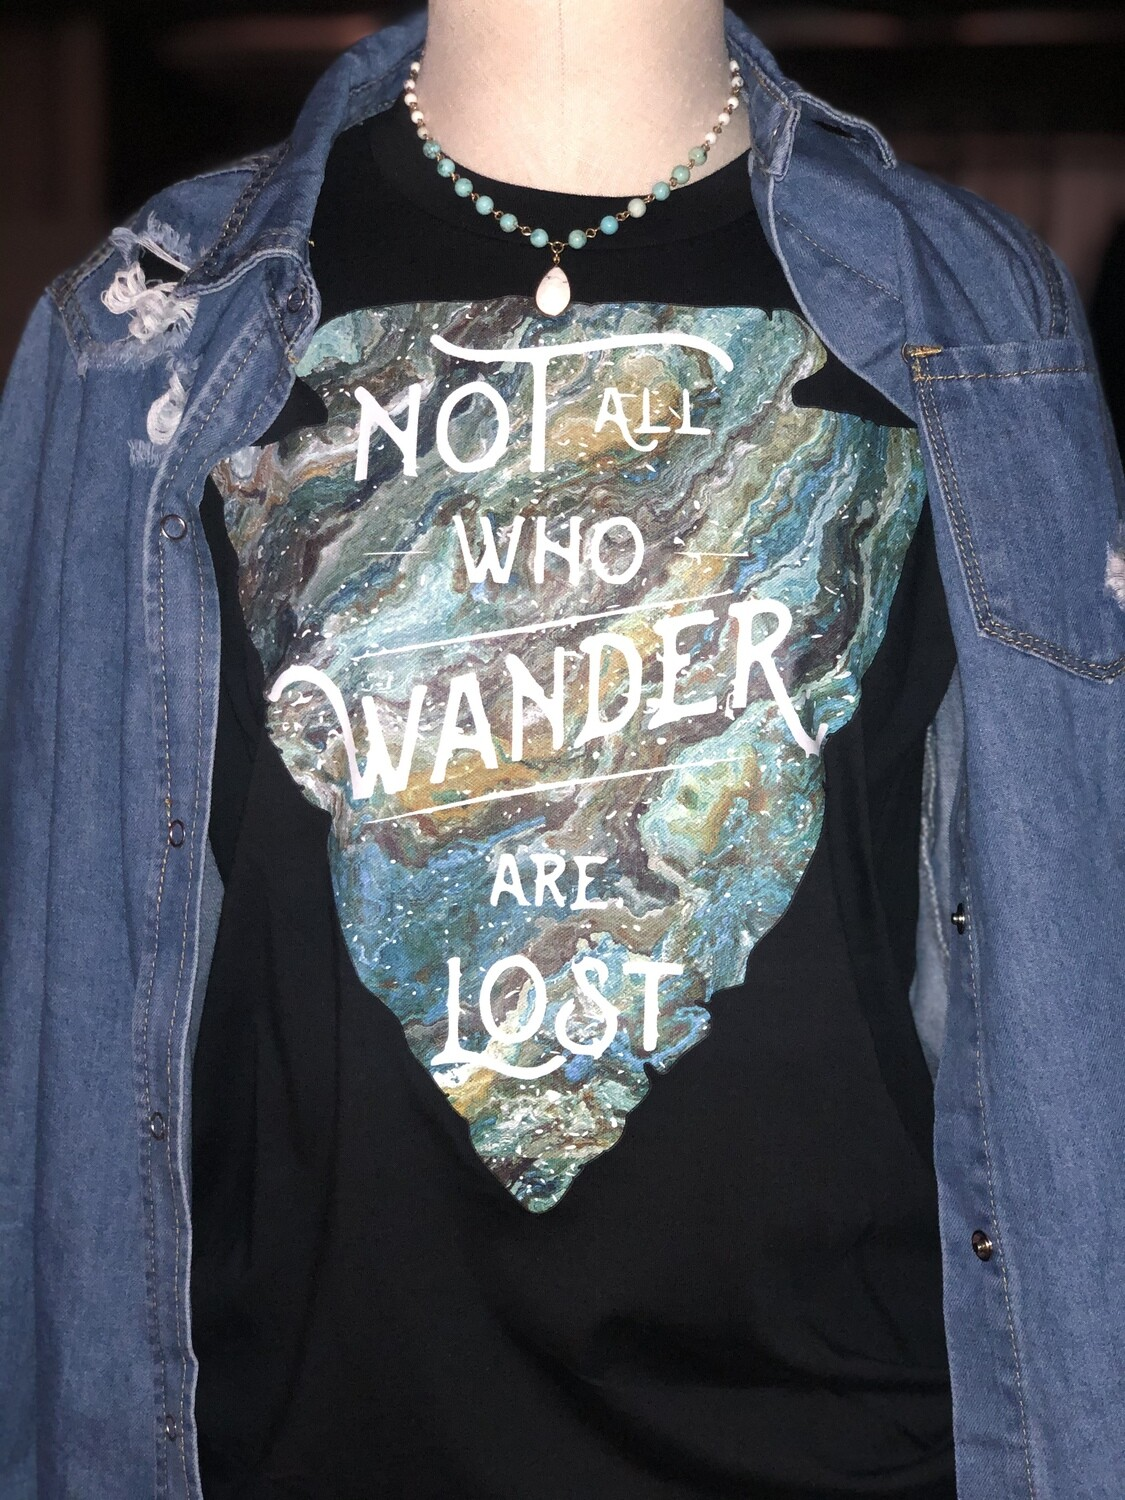 NOT ALL THAT WONDER